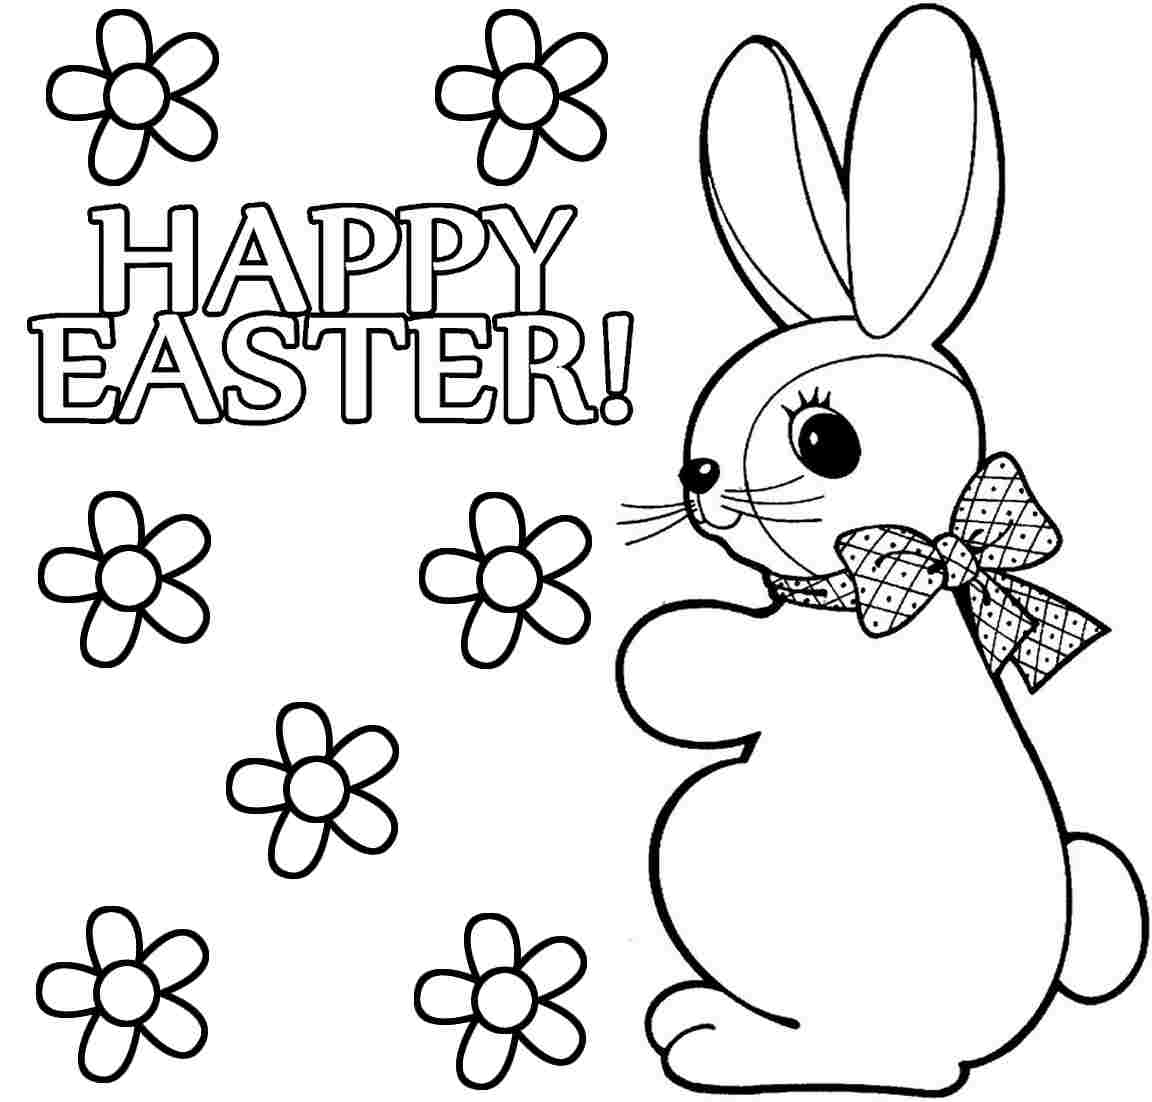 Easter Color Pages Printable Coloring and Coloring Download Of Easter Coloring Printable Easter Coloring Pages Coloring Gallery